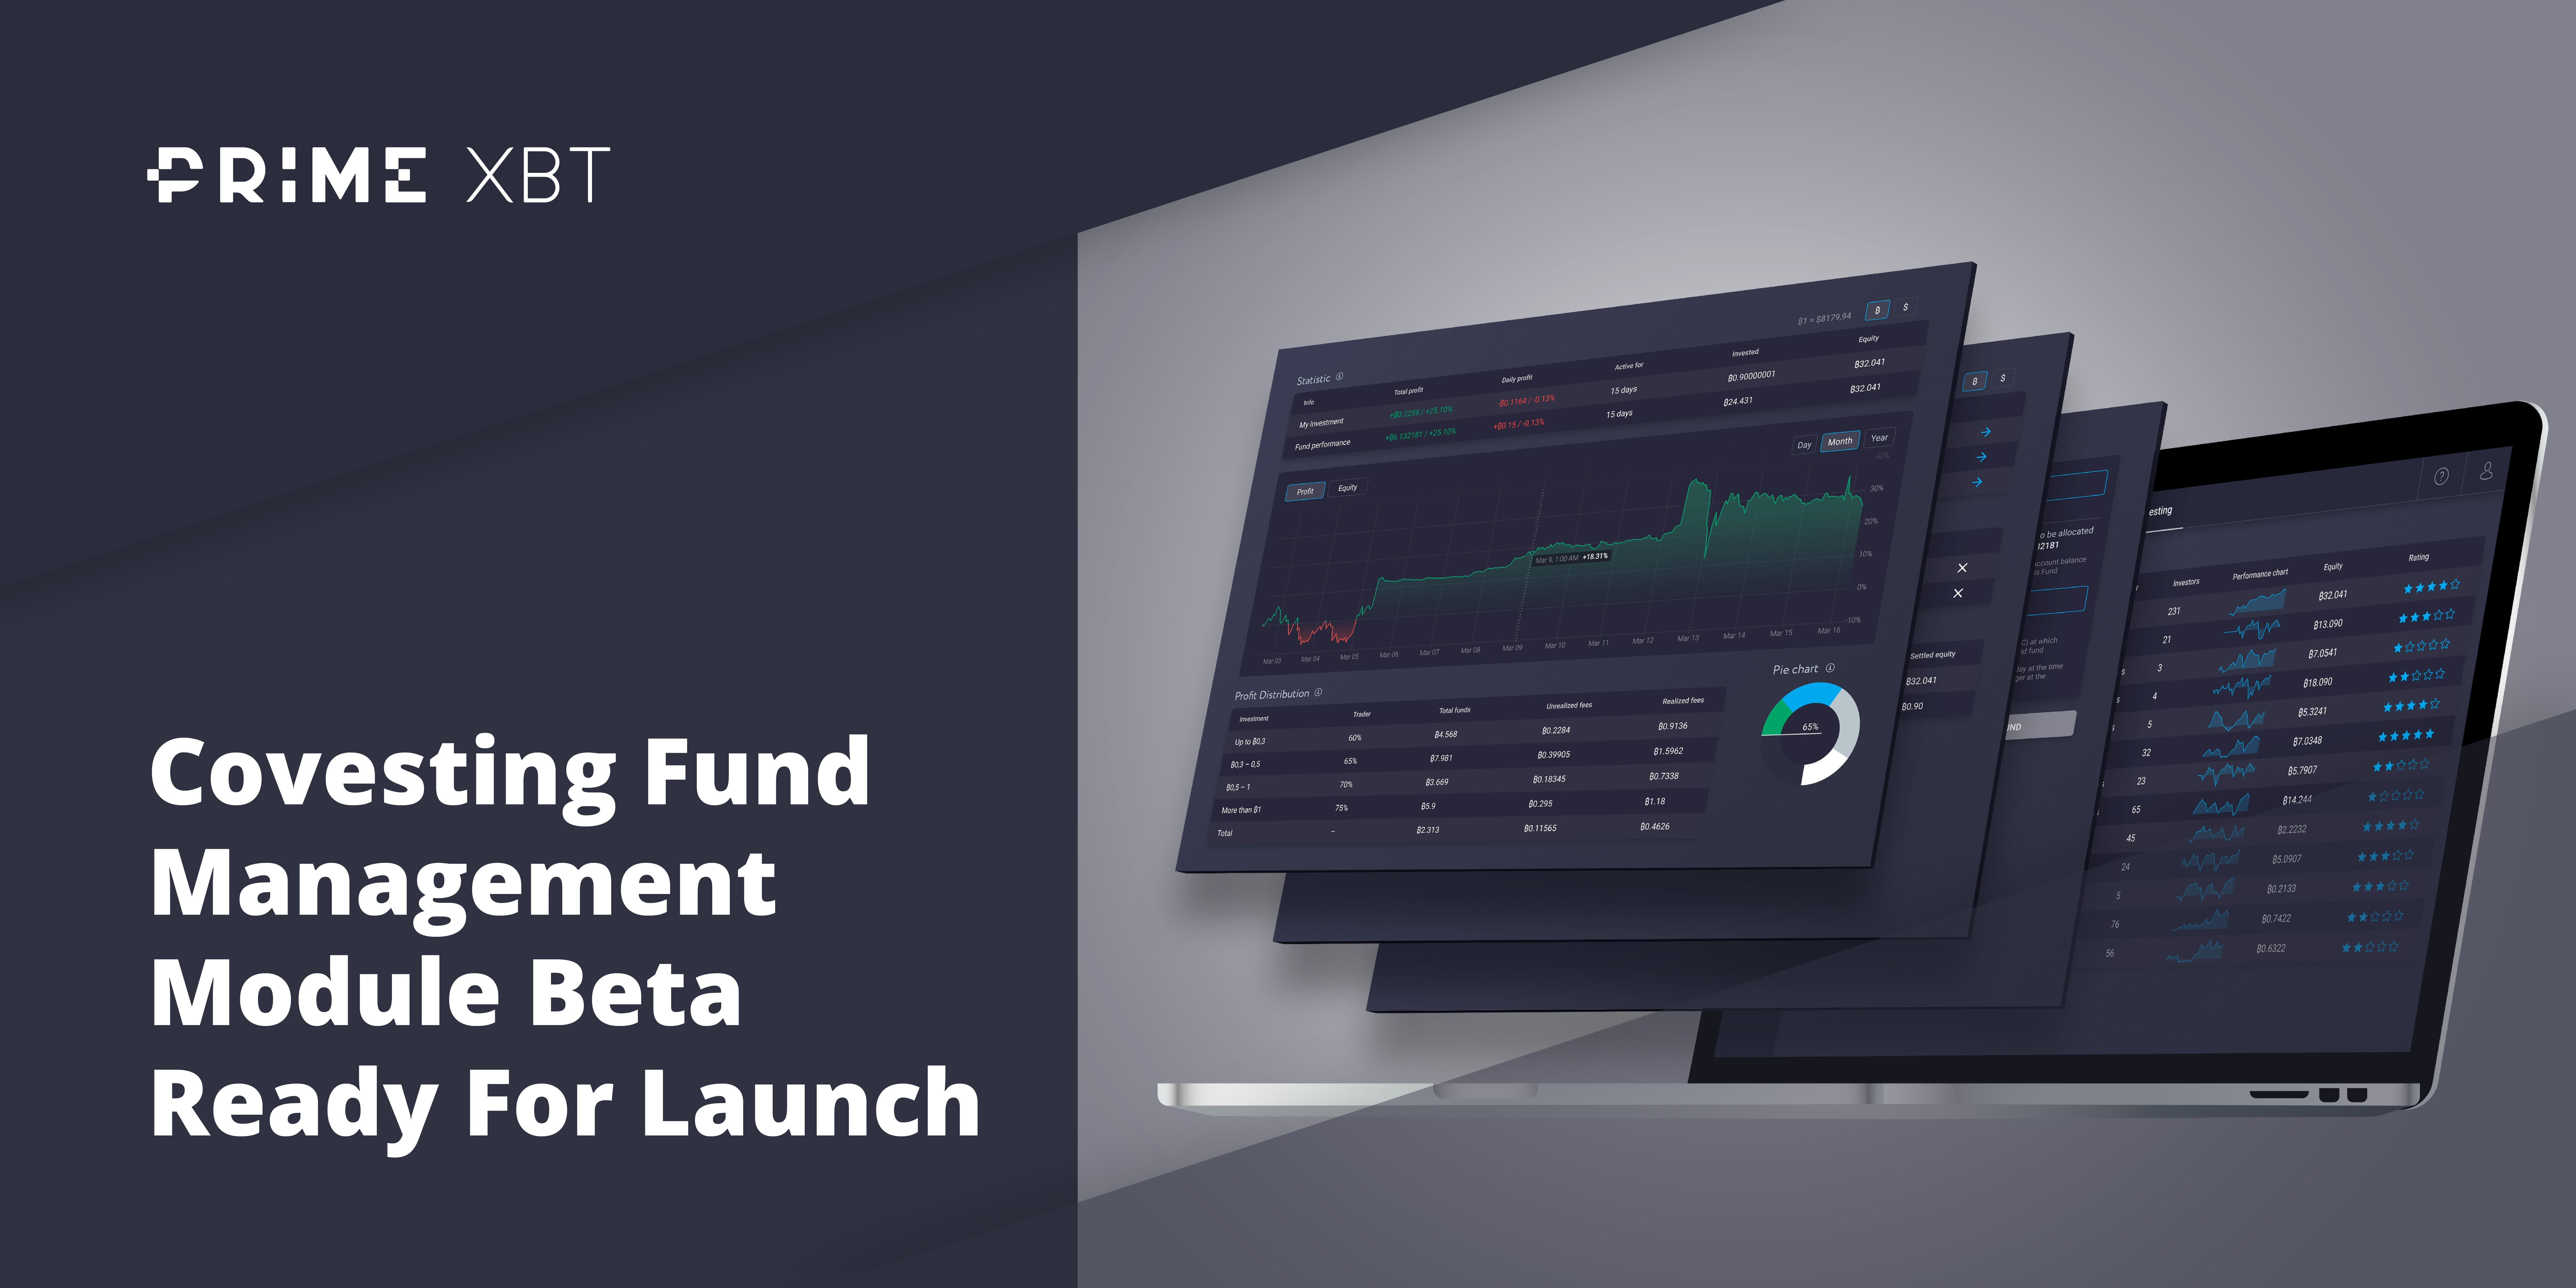 2020 03 20 20.01.45 - Covesting Fund Management Module Beta Ready For Launch, Here's How It Works